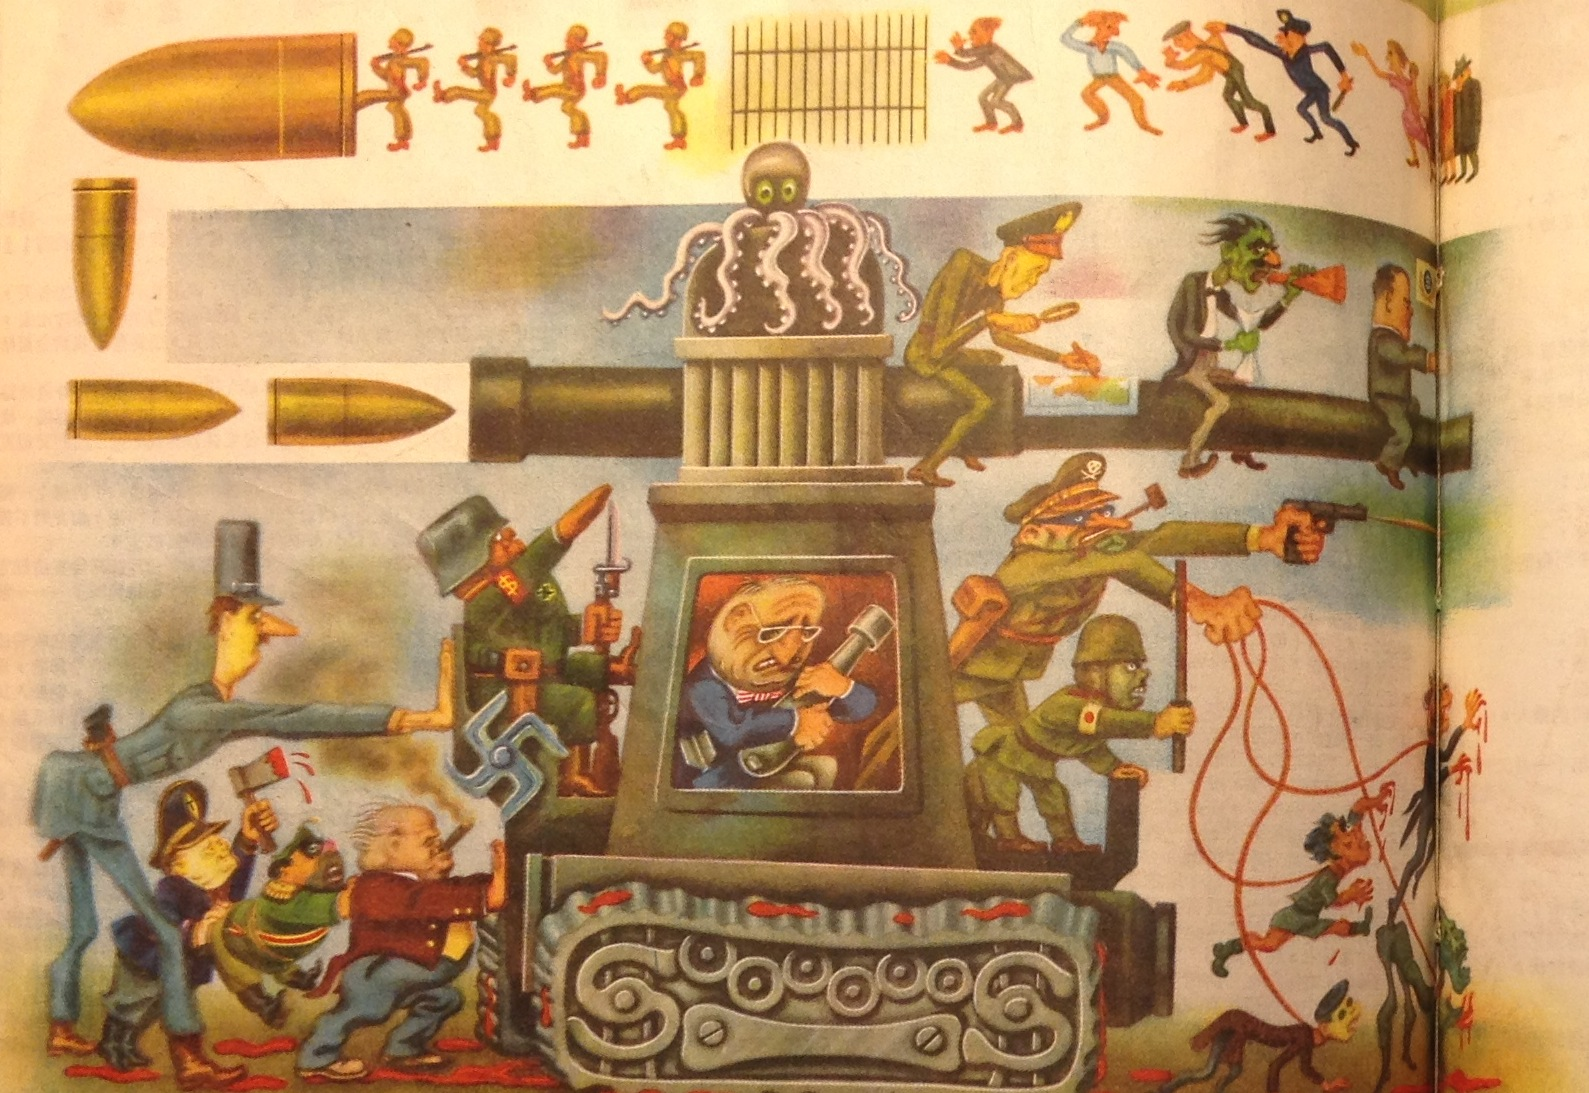 1950 10 cartoons of American imperialism, death, and Fascism